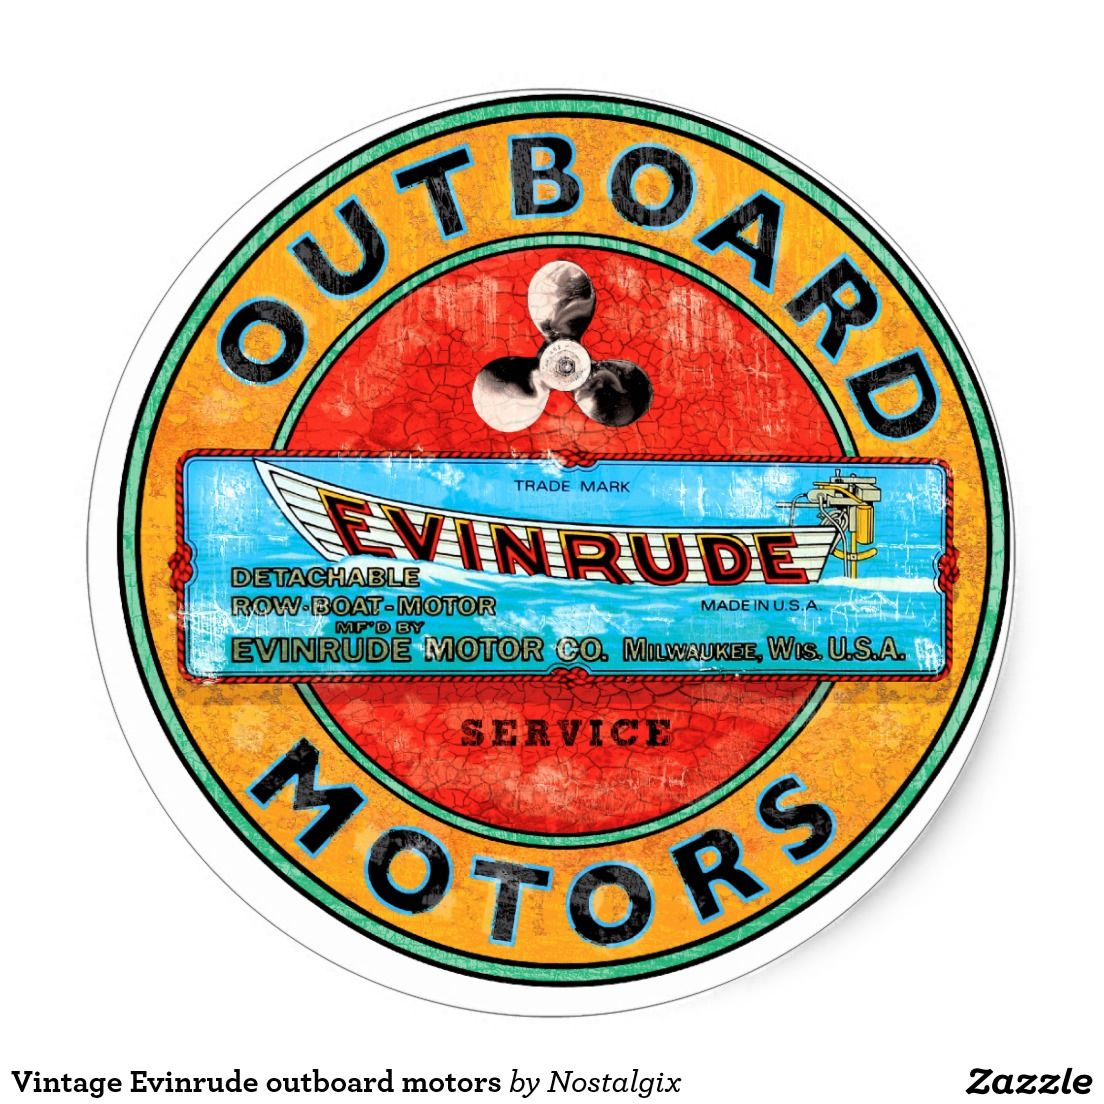 Vintage Evinrude Outboard Motors Classic Round Sticker Outboard Motors Outboard Boat Signs